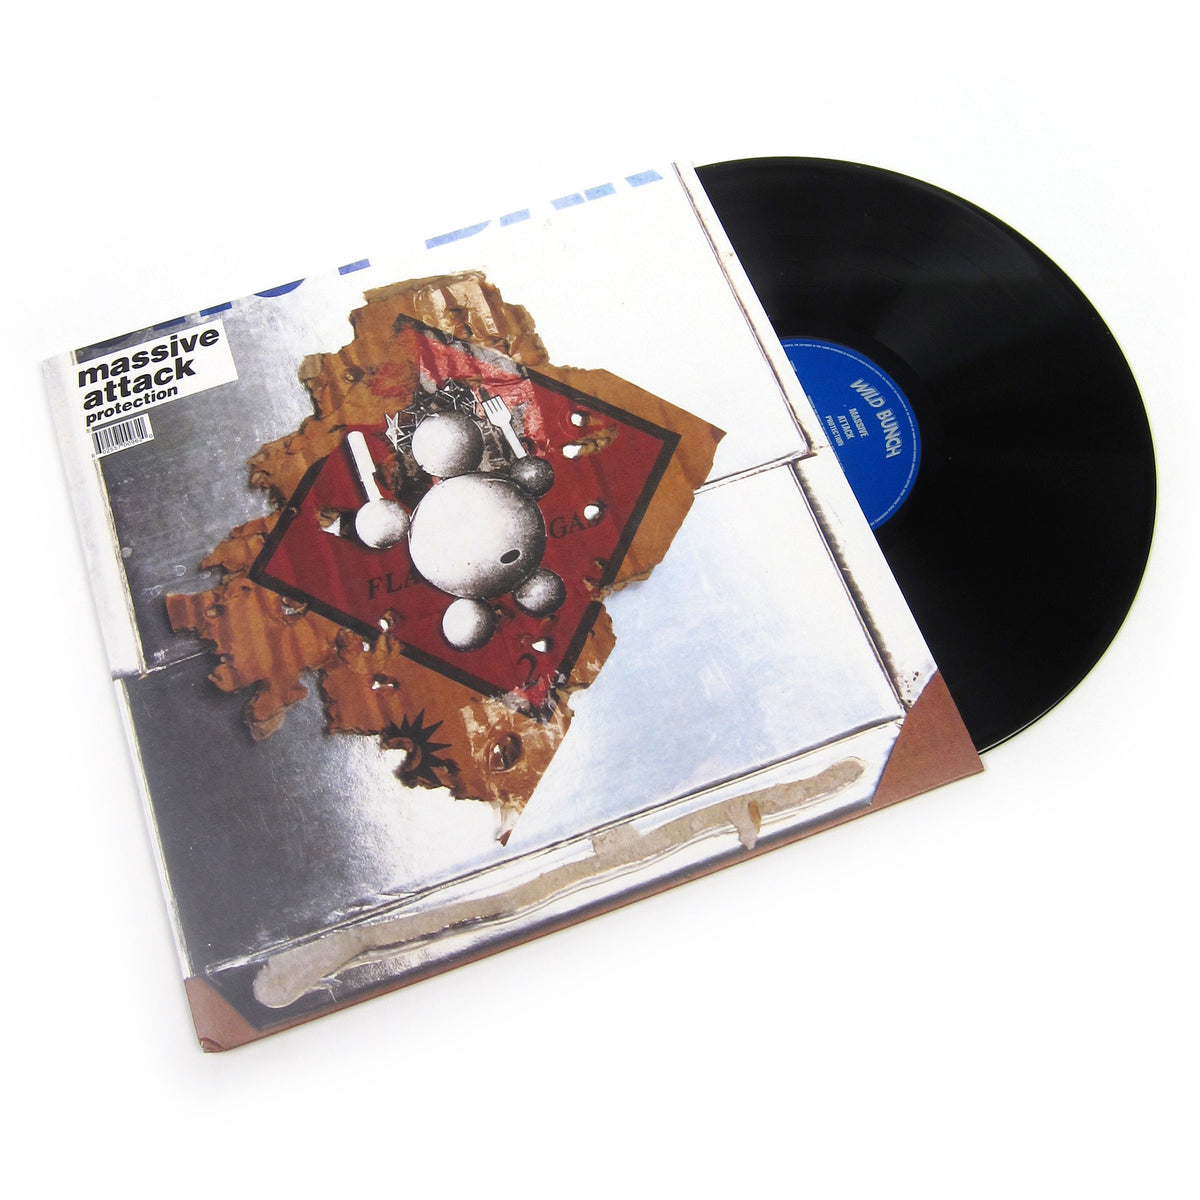 Massive Attack: Protection Vinyl LP